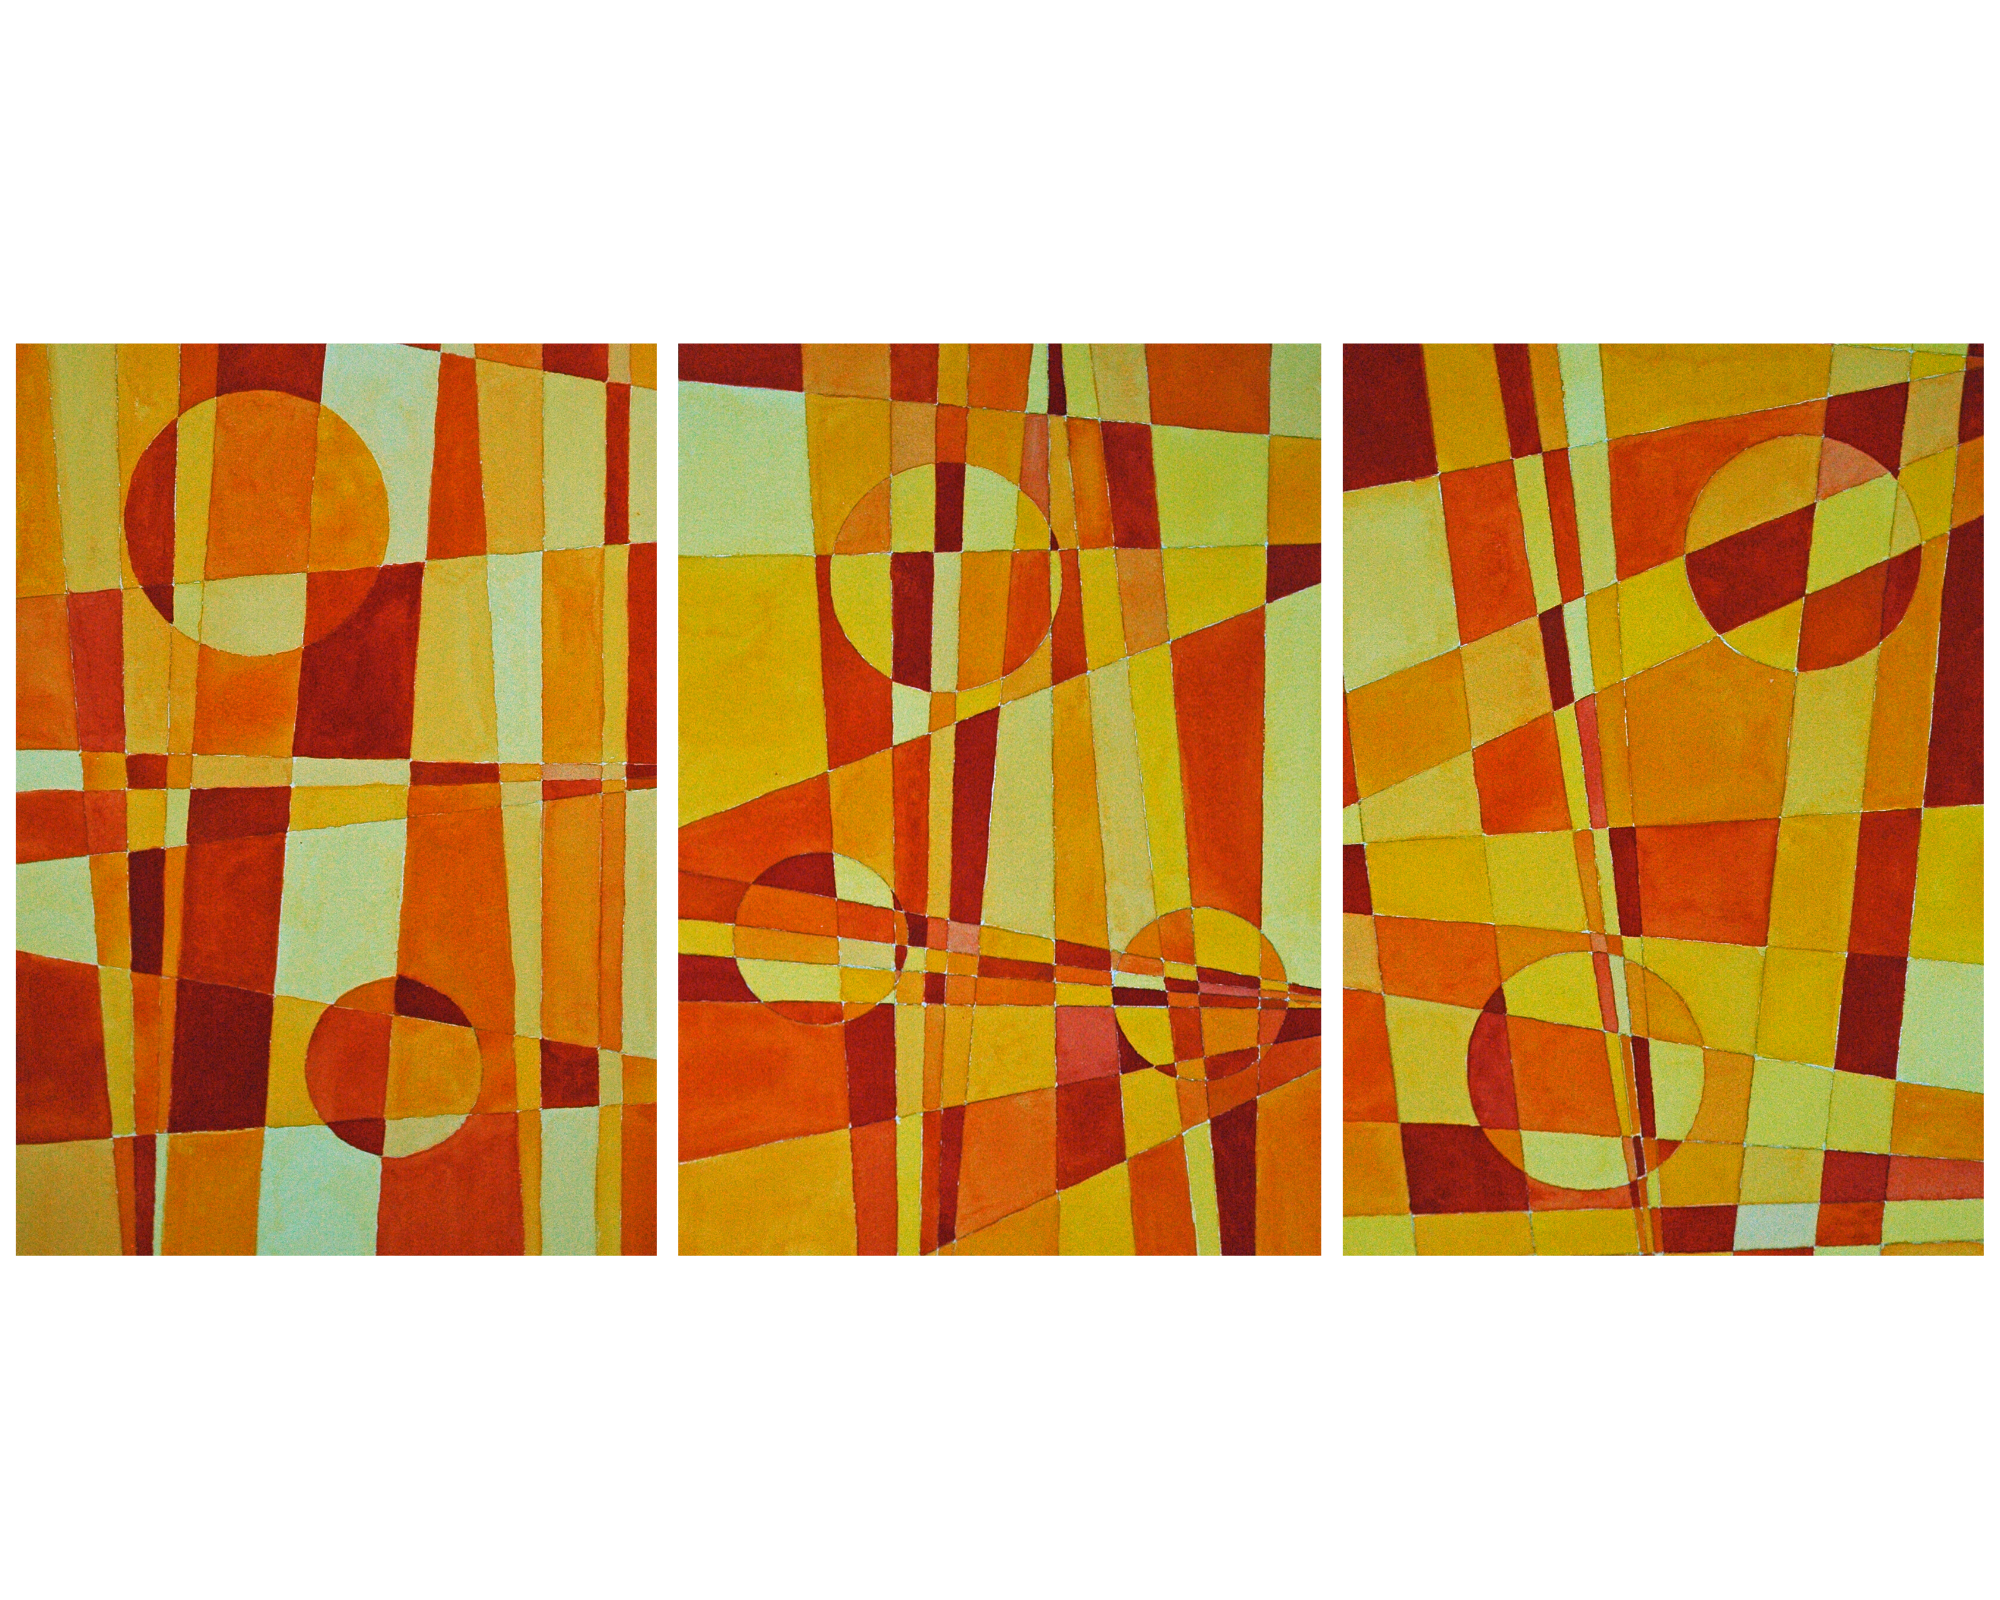 Triptych   yellows oranges and reds im8u7p